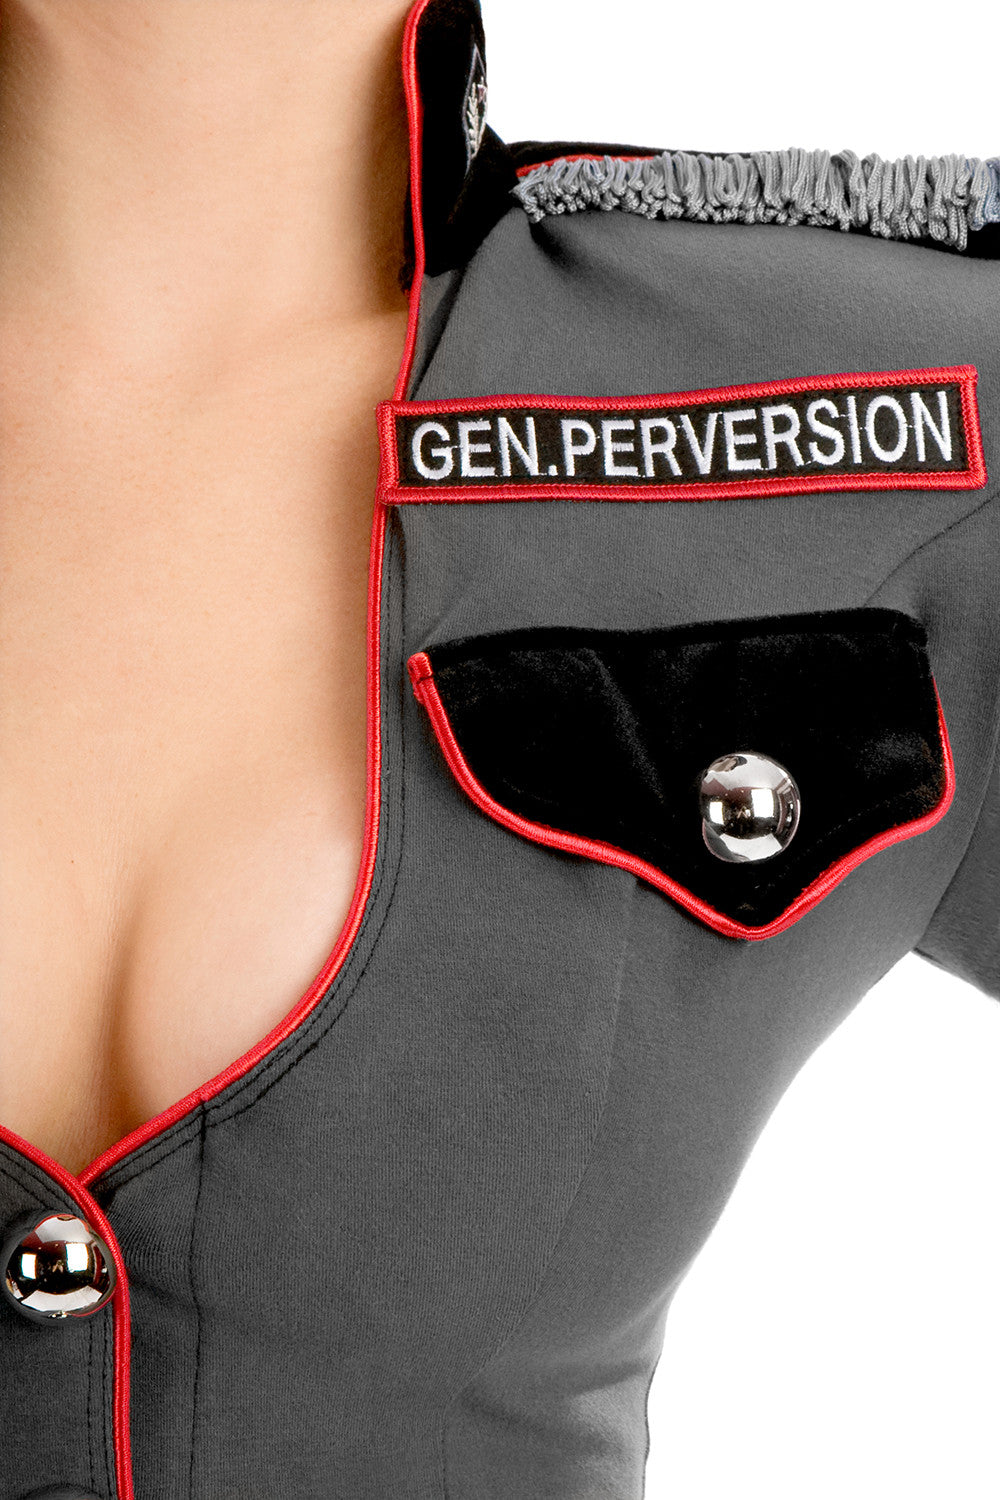 General Perversion Jacket